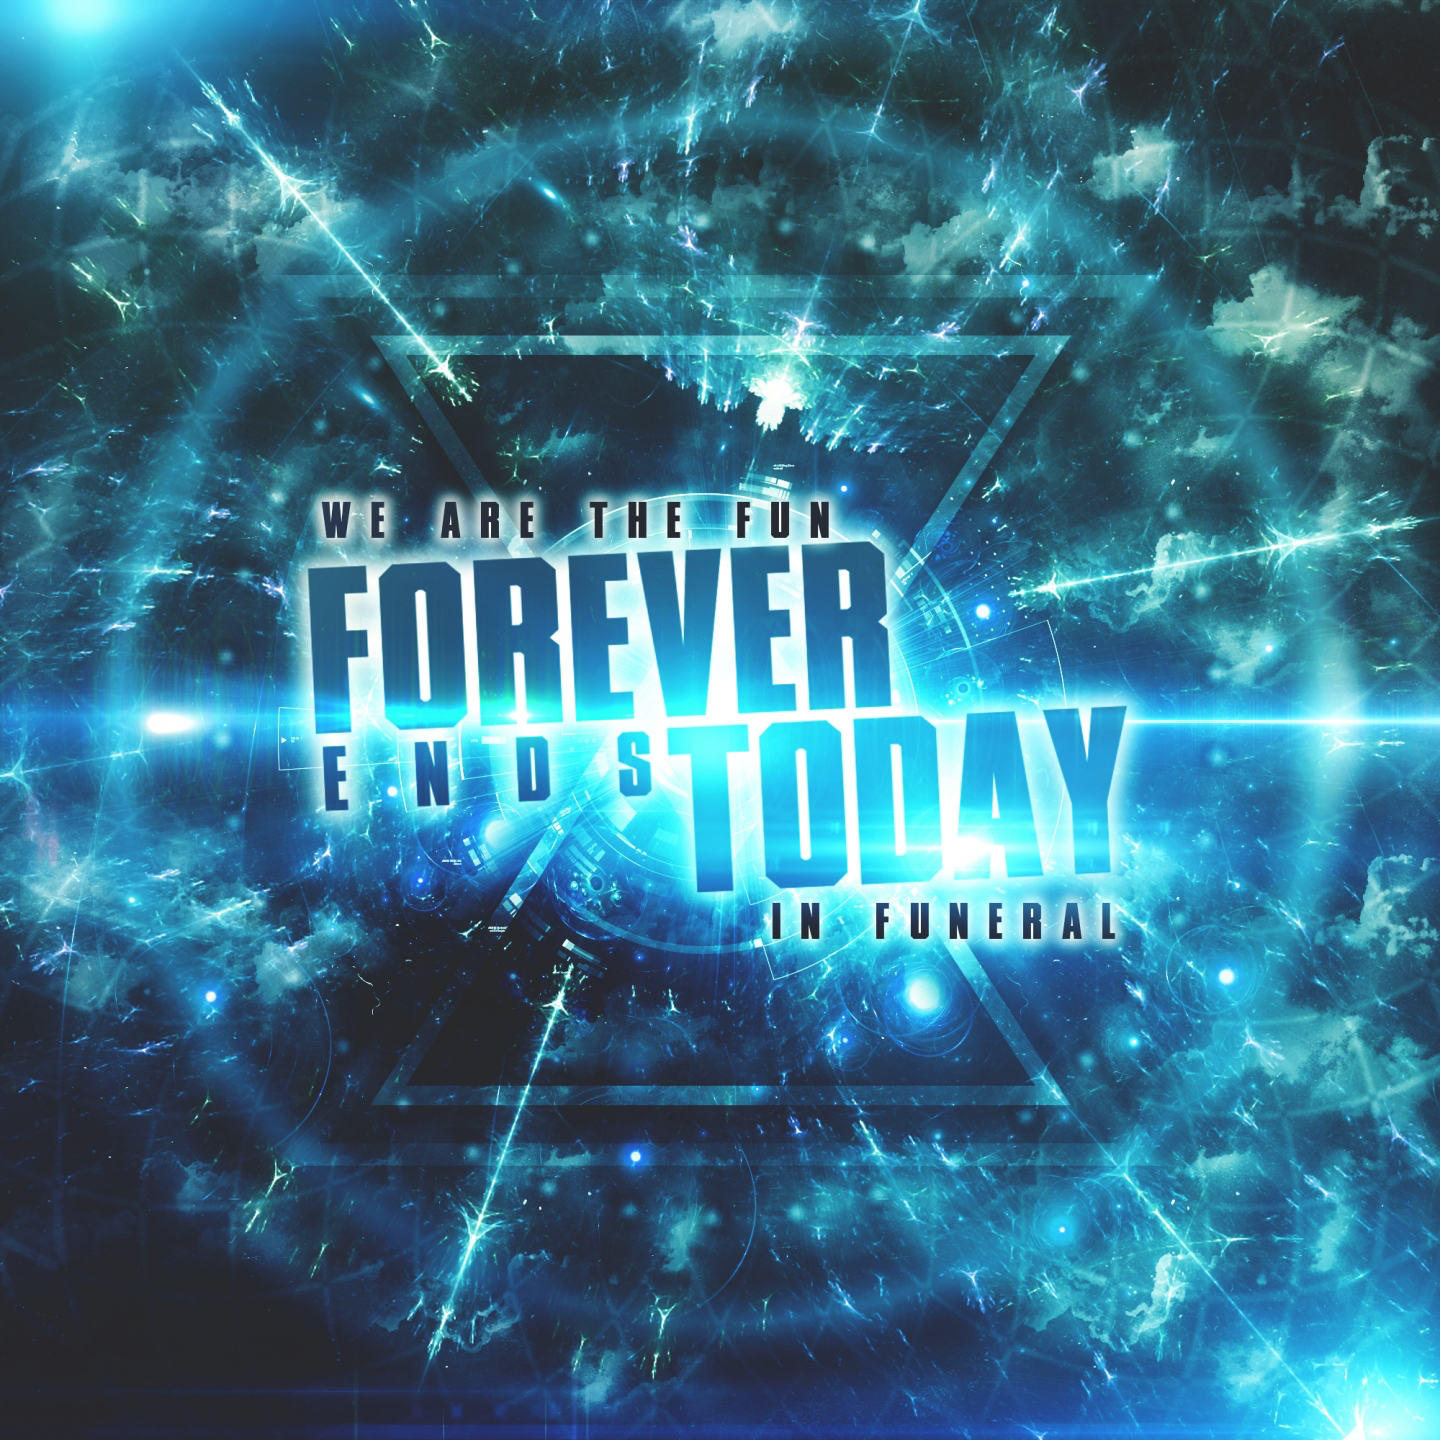 Forever Ends Today - We Are the Fun in Funeral (2013)